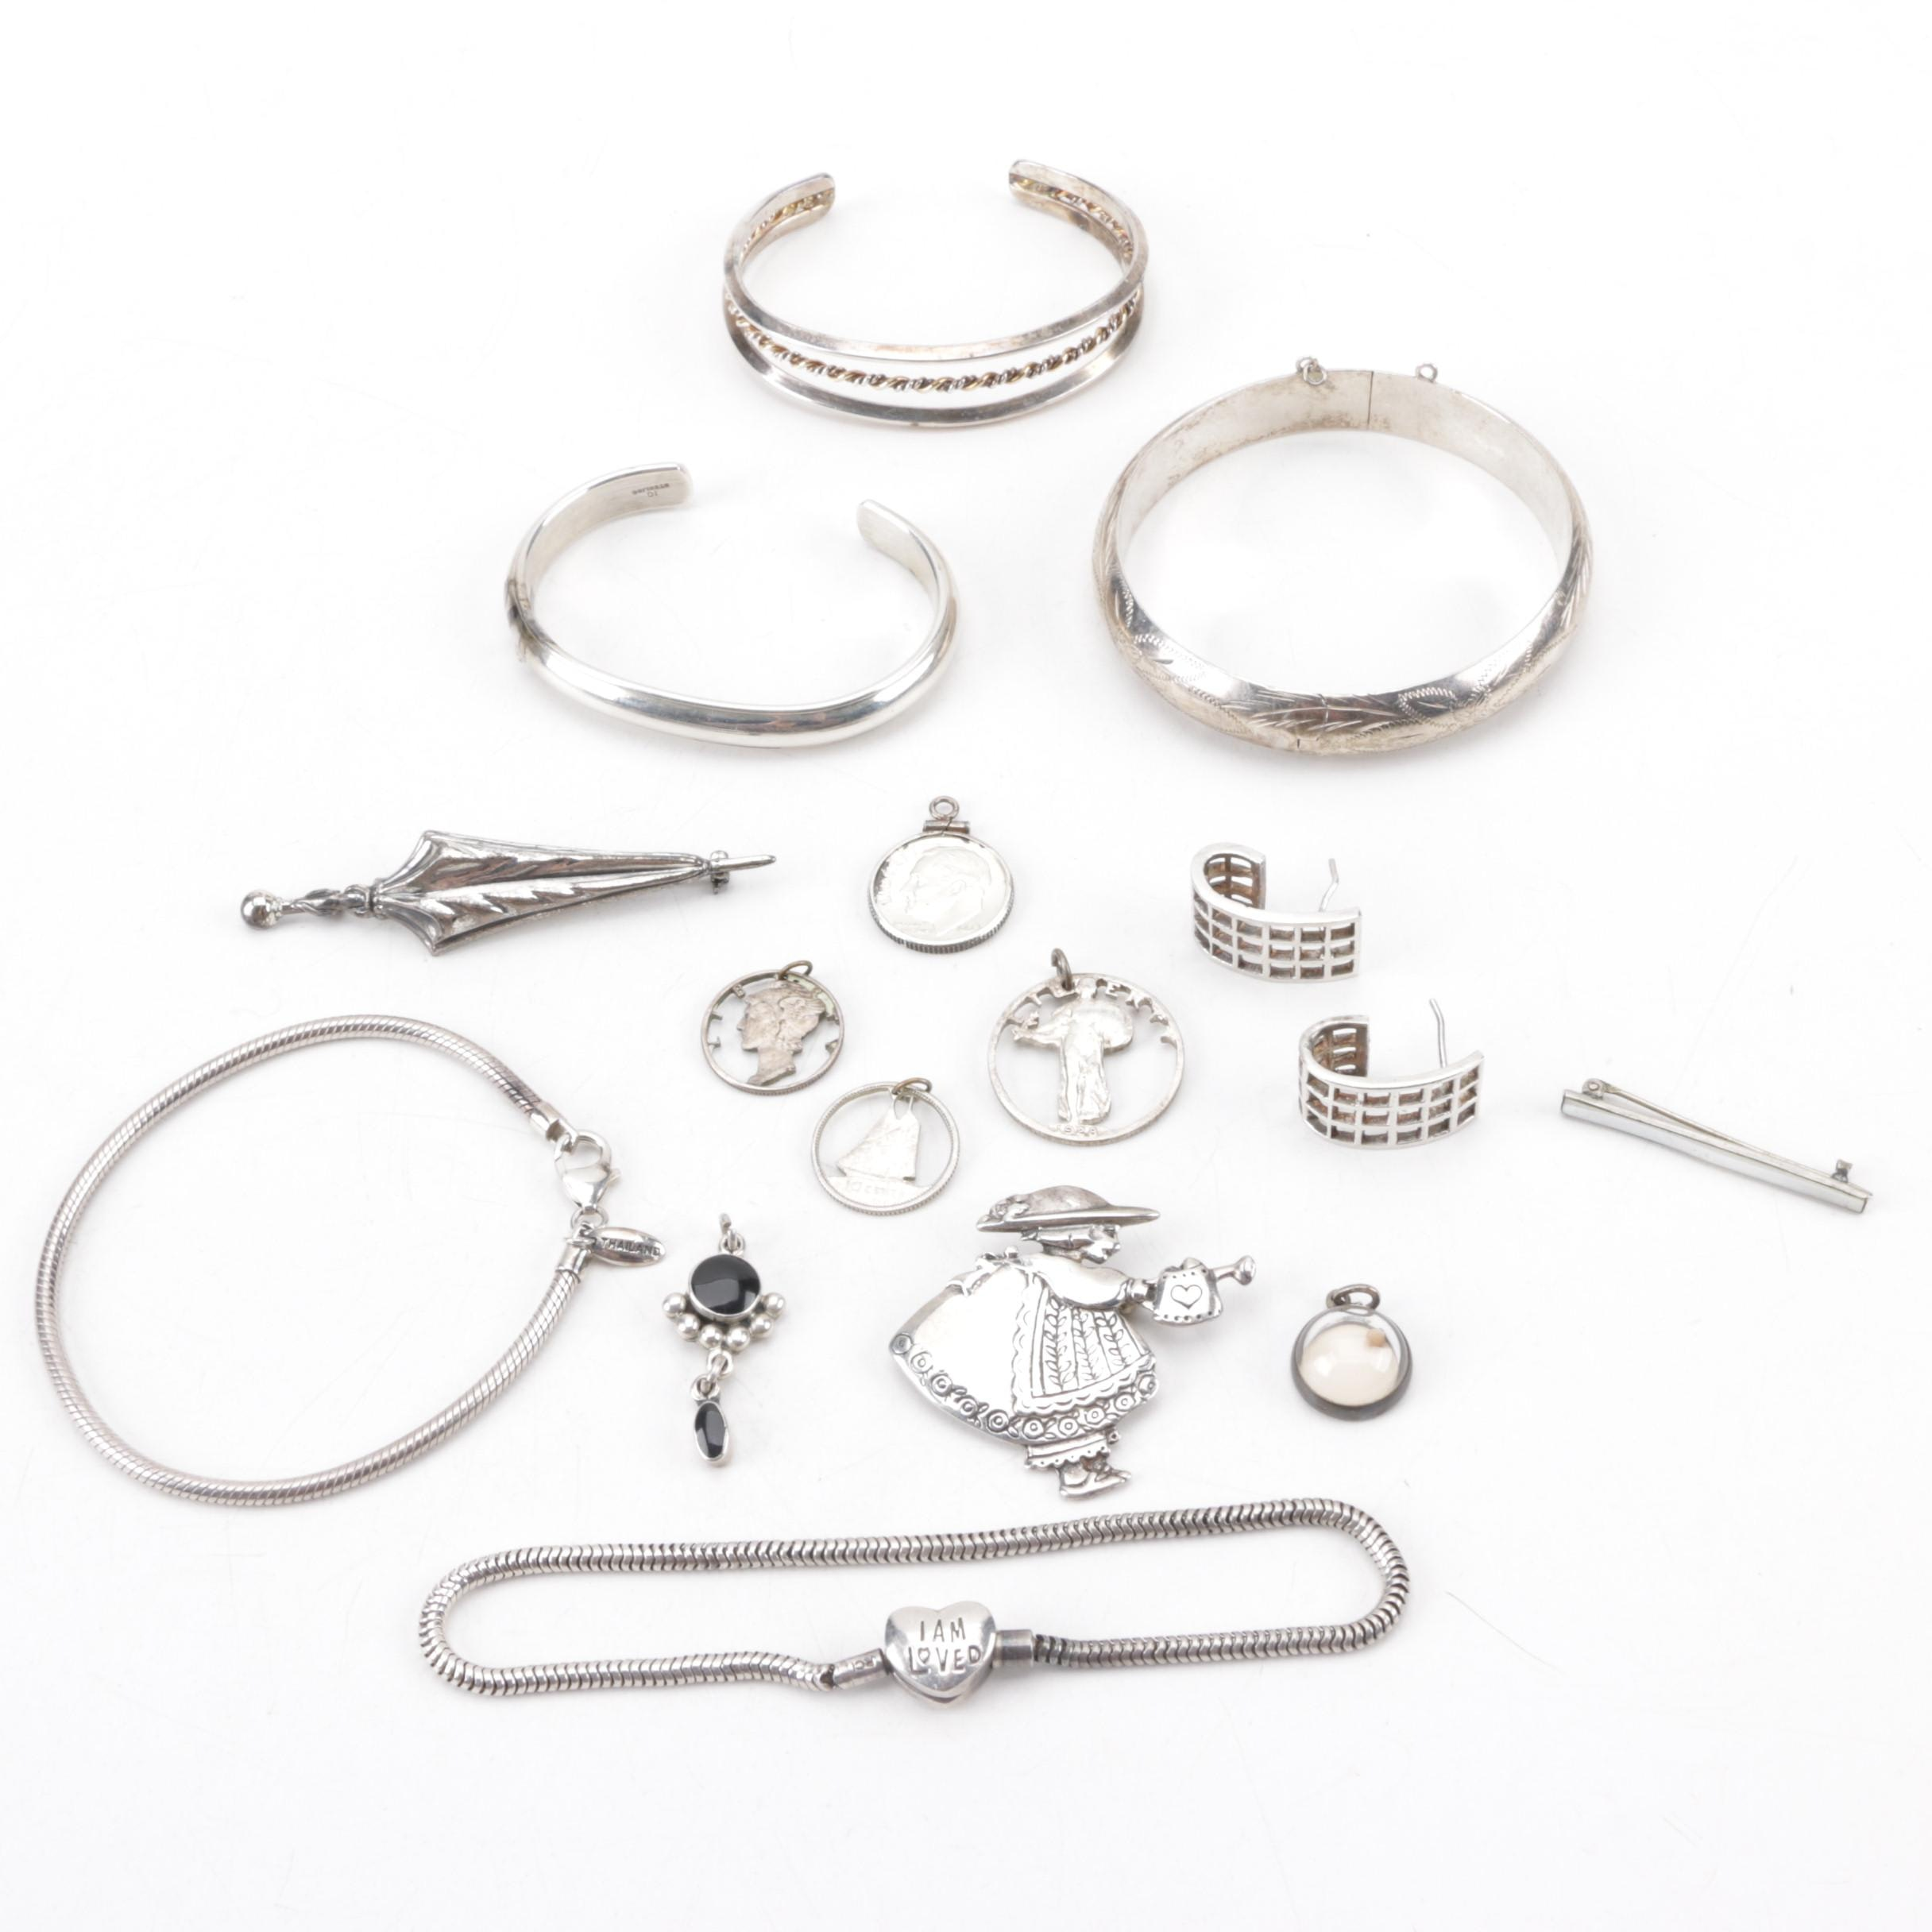 Assortment of Sterling Silver Jewelry Including Coin Pendants